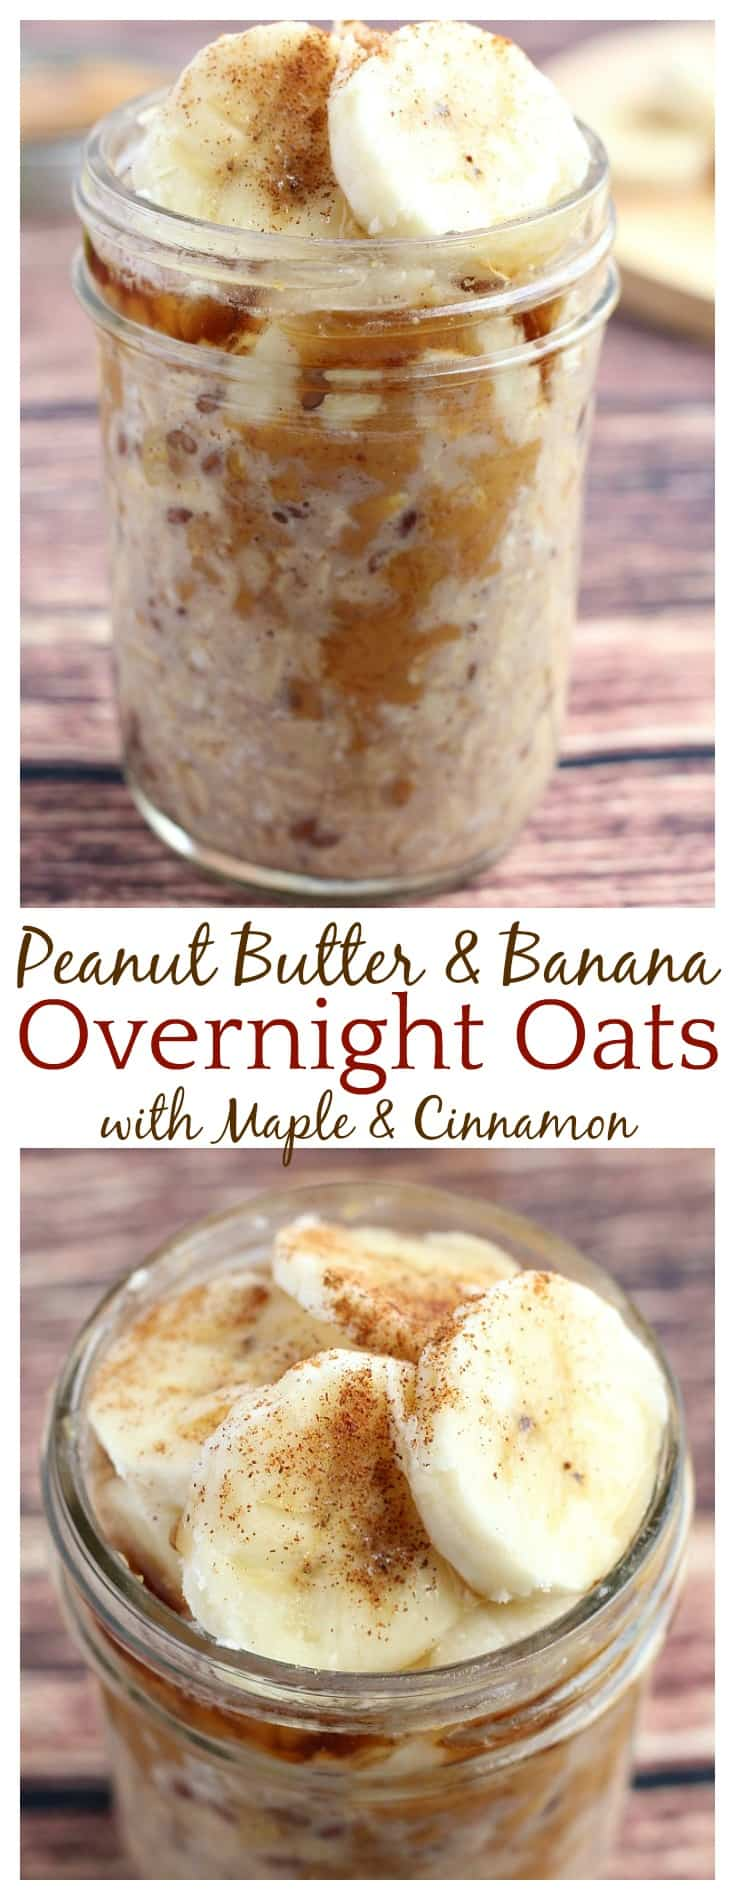 Mornings are very busy and this Peanut Butter and Banana Overnight Oats recipes has definitely simplified them! I love the combination of peanut butter and banana especially when maple syrup and cinnamon are added! This is a super easy recipe for a quick, delicious overnight oatmeal breakfast! | #overnightoats #breakfast #oatmeal #easyrecipe #dlbrecipes